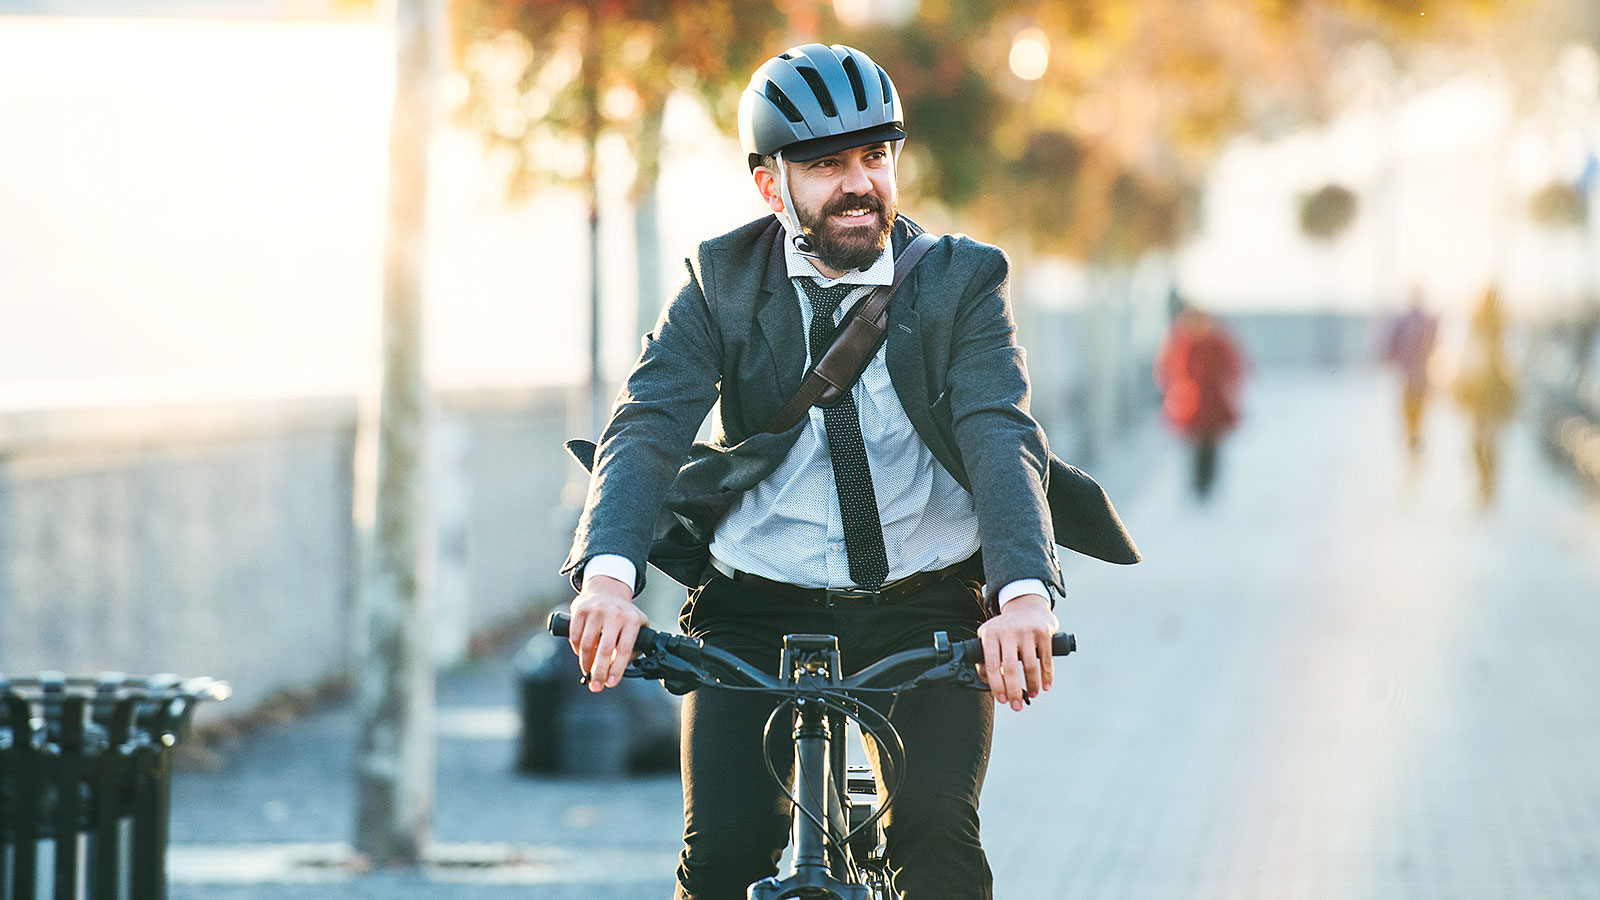 Ladders on Flipboard: Ride a bike to work? These experts offer sage advice  for your commute